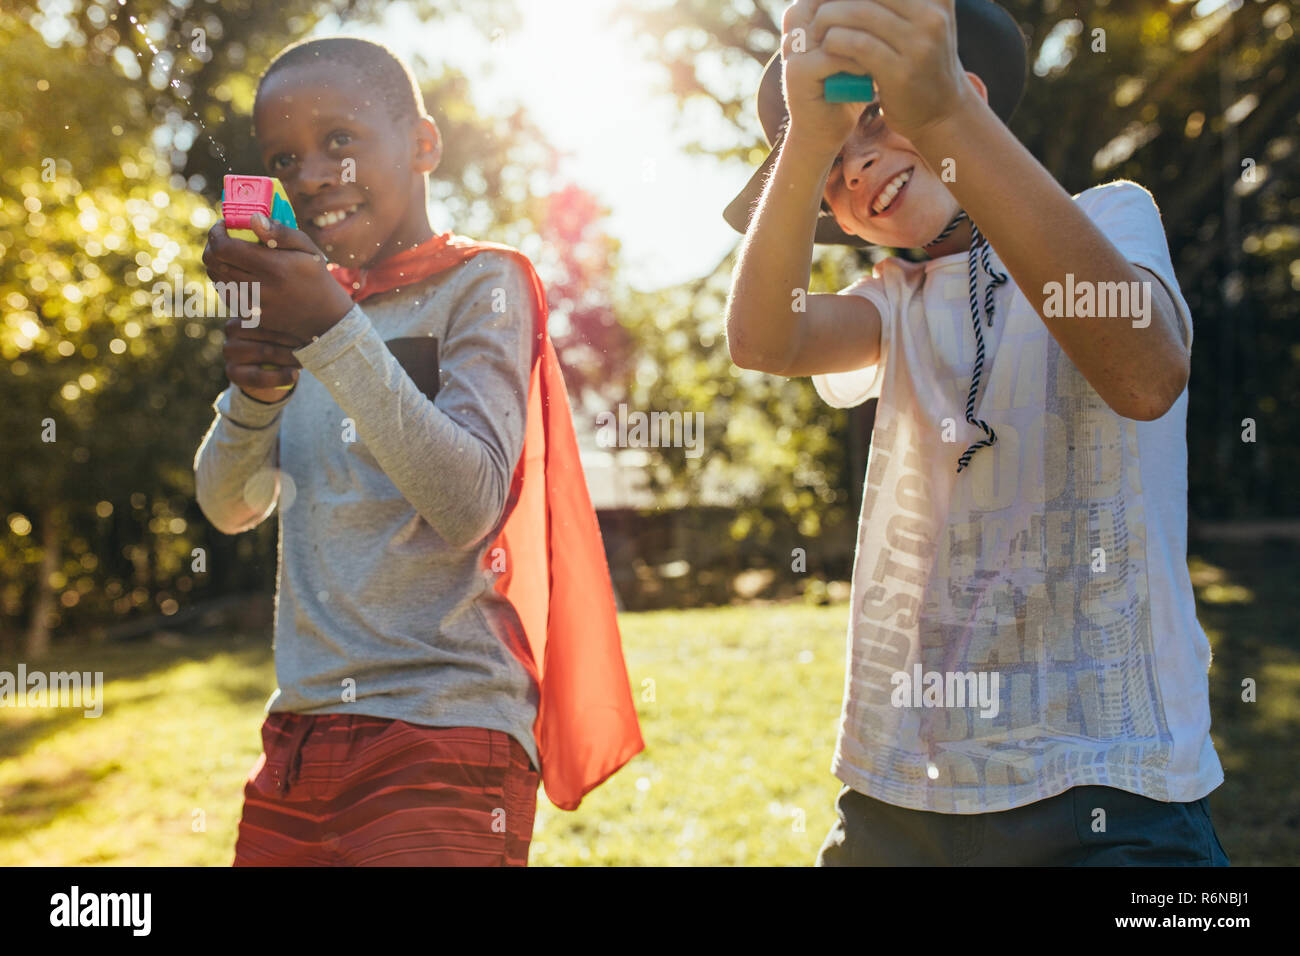 Kids playing with water guns outdoors. Little boys spraying water from a gun in backyard. - Stock Image